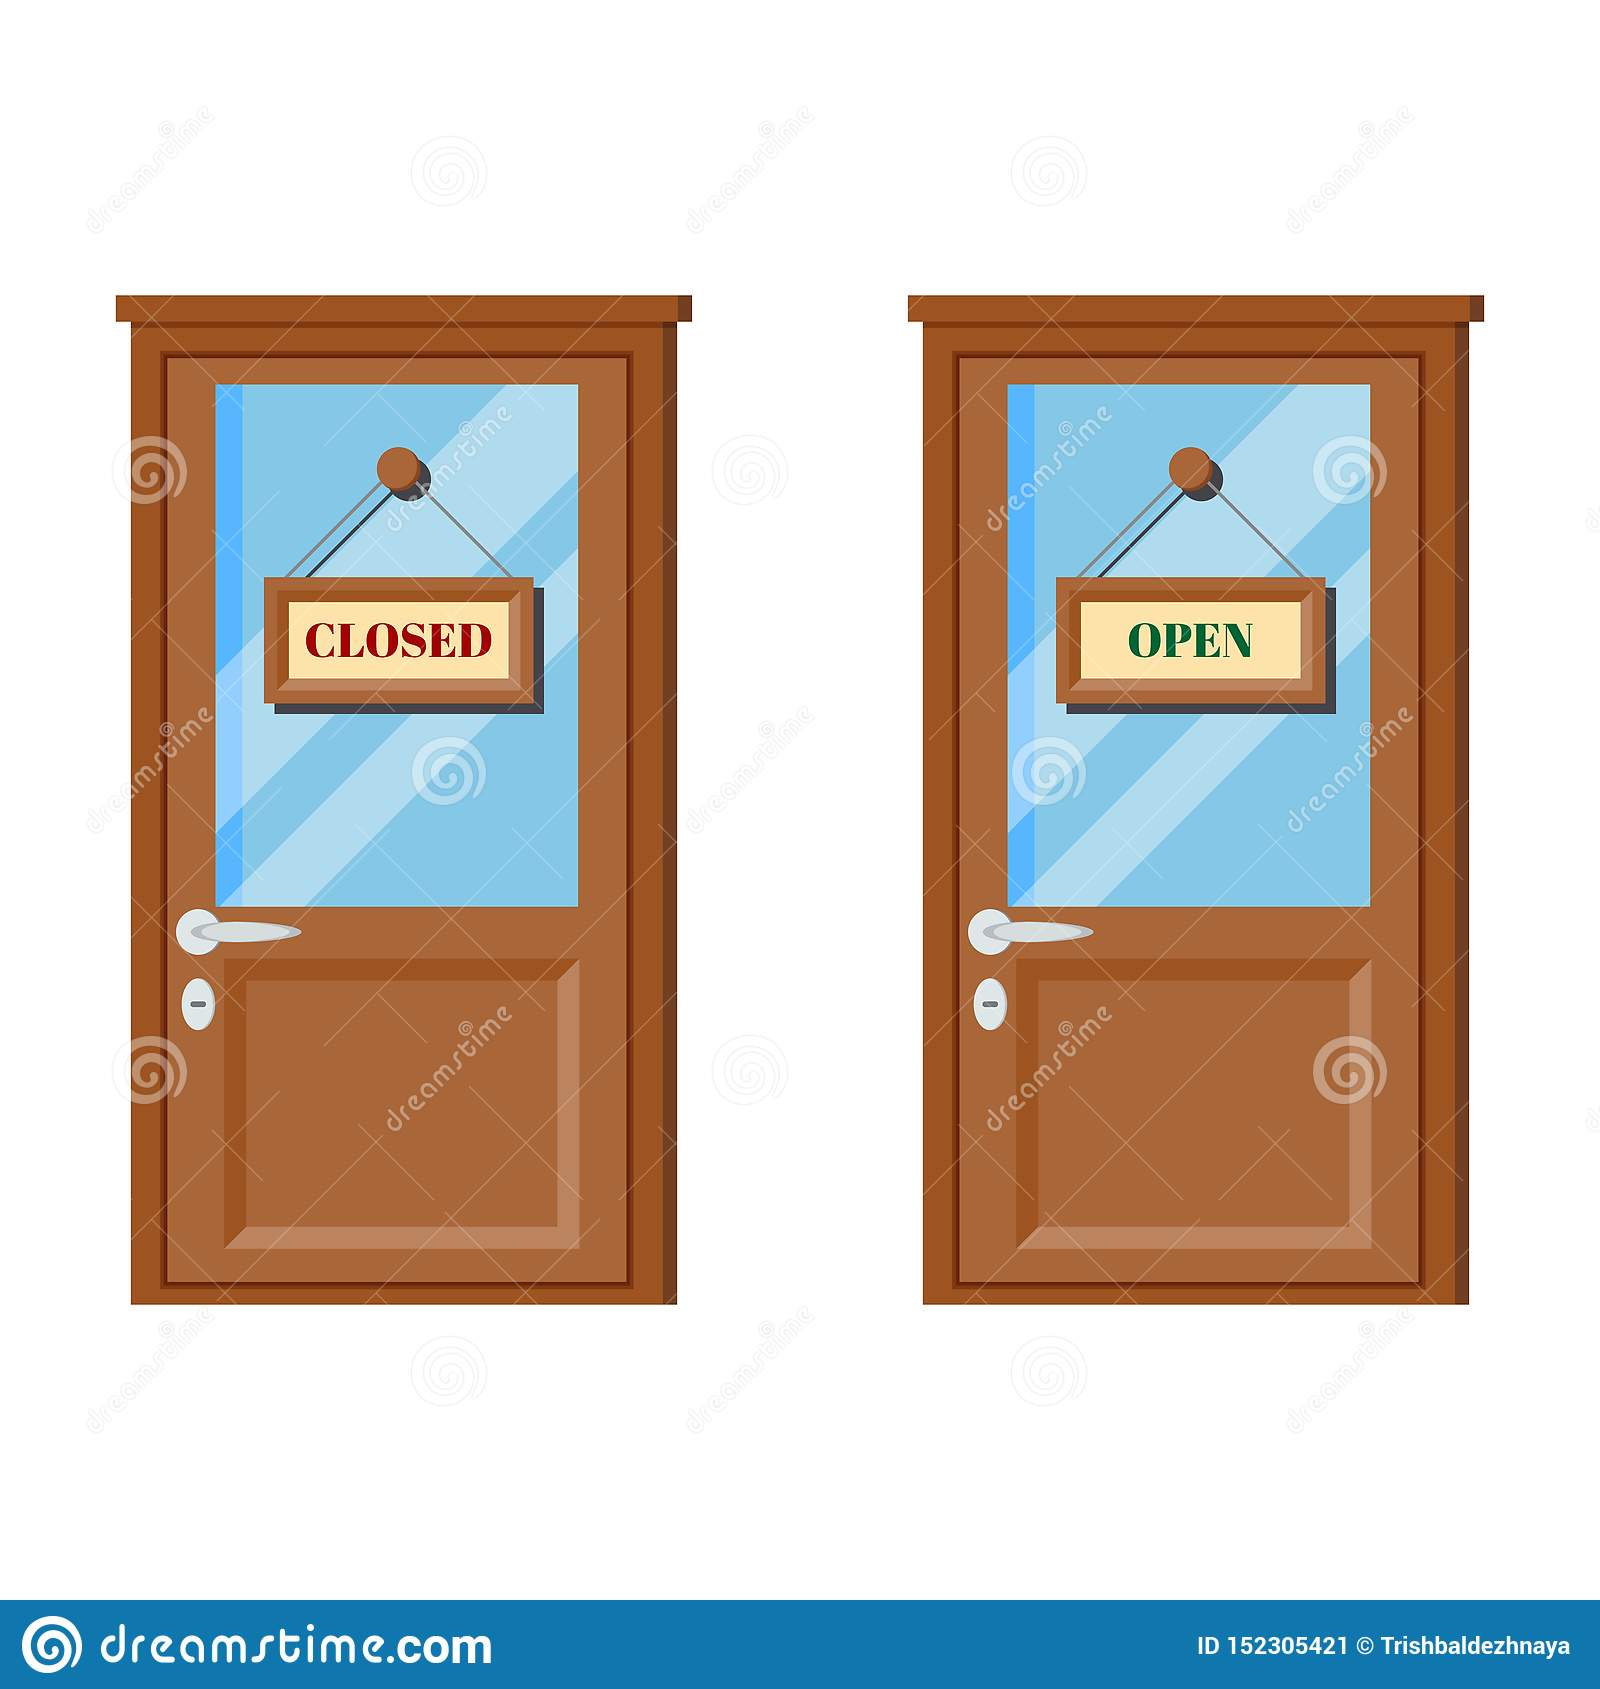 Set of wooden doors with glass, door handle, open and closed business signs